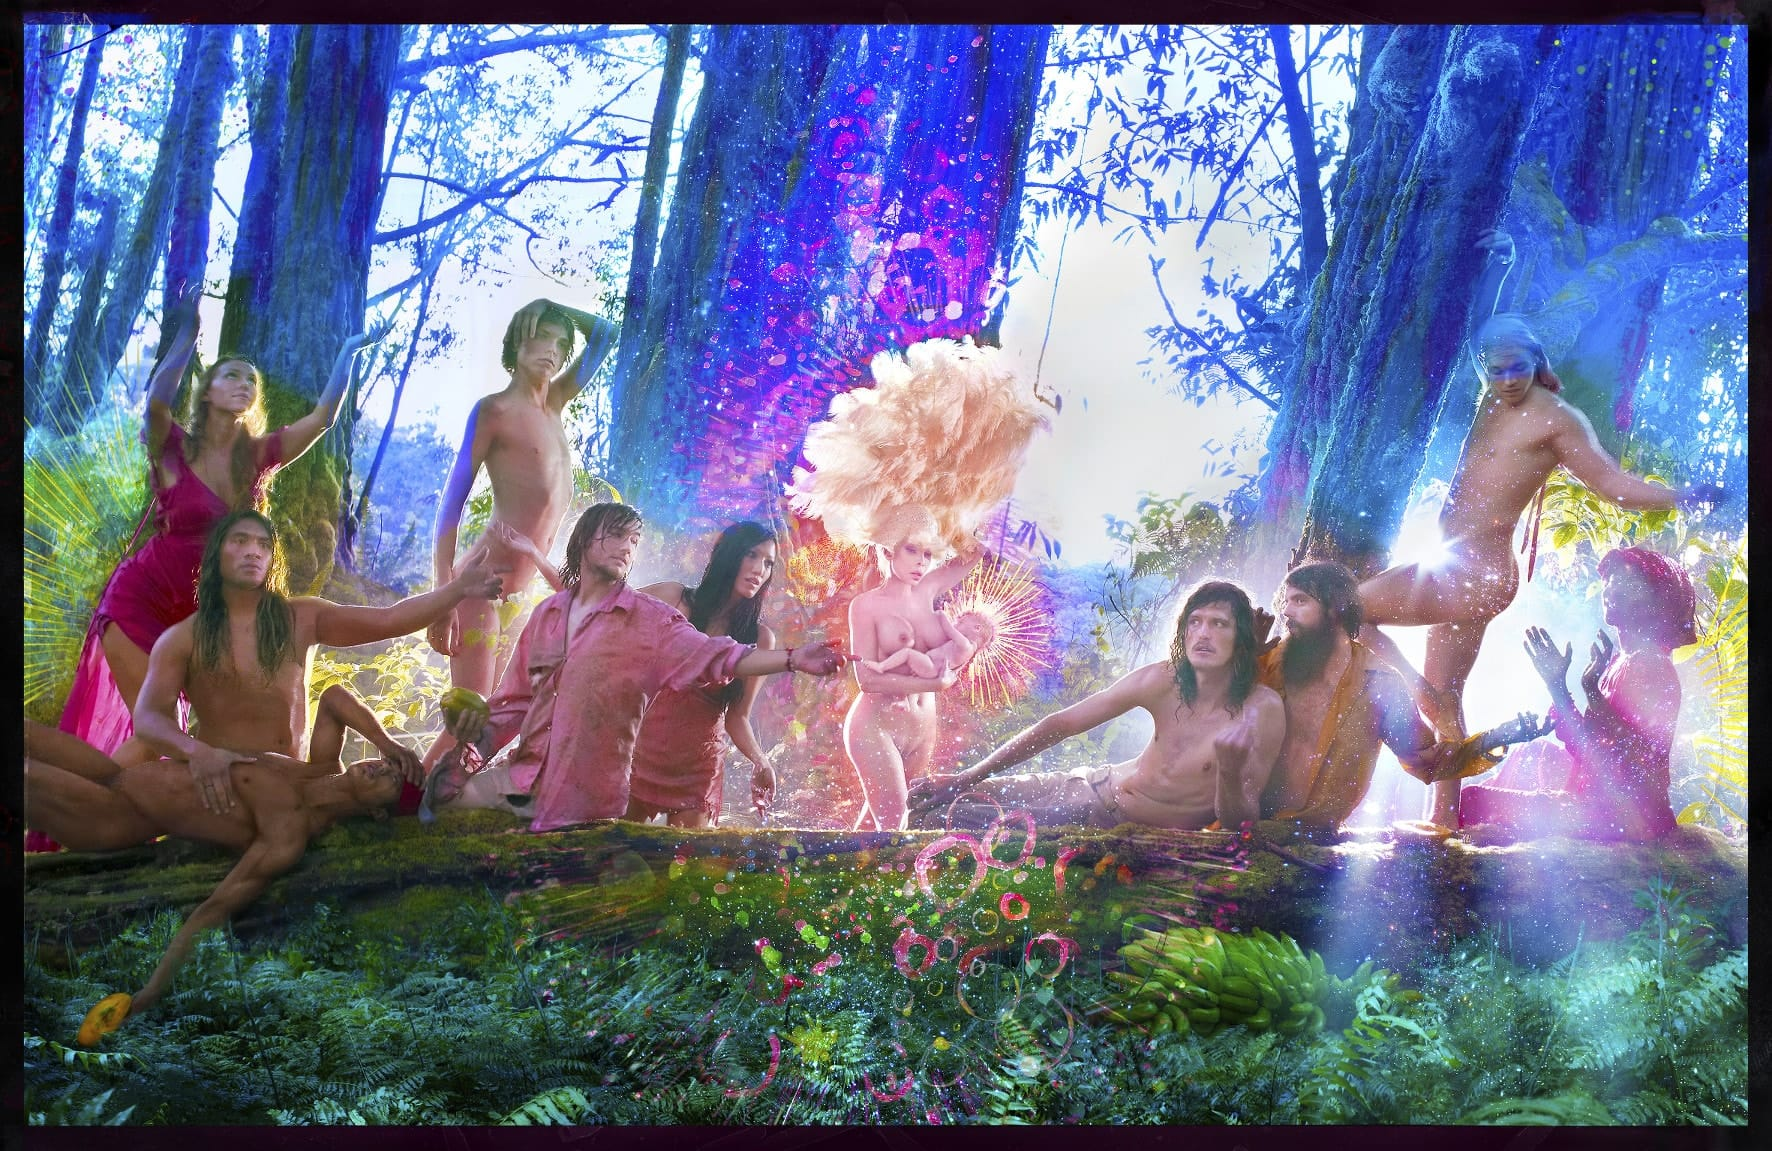 Exposition David LaChapelle. After the deluge — Bam Mons image The First Supper, 2017